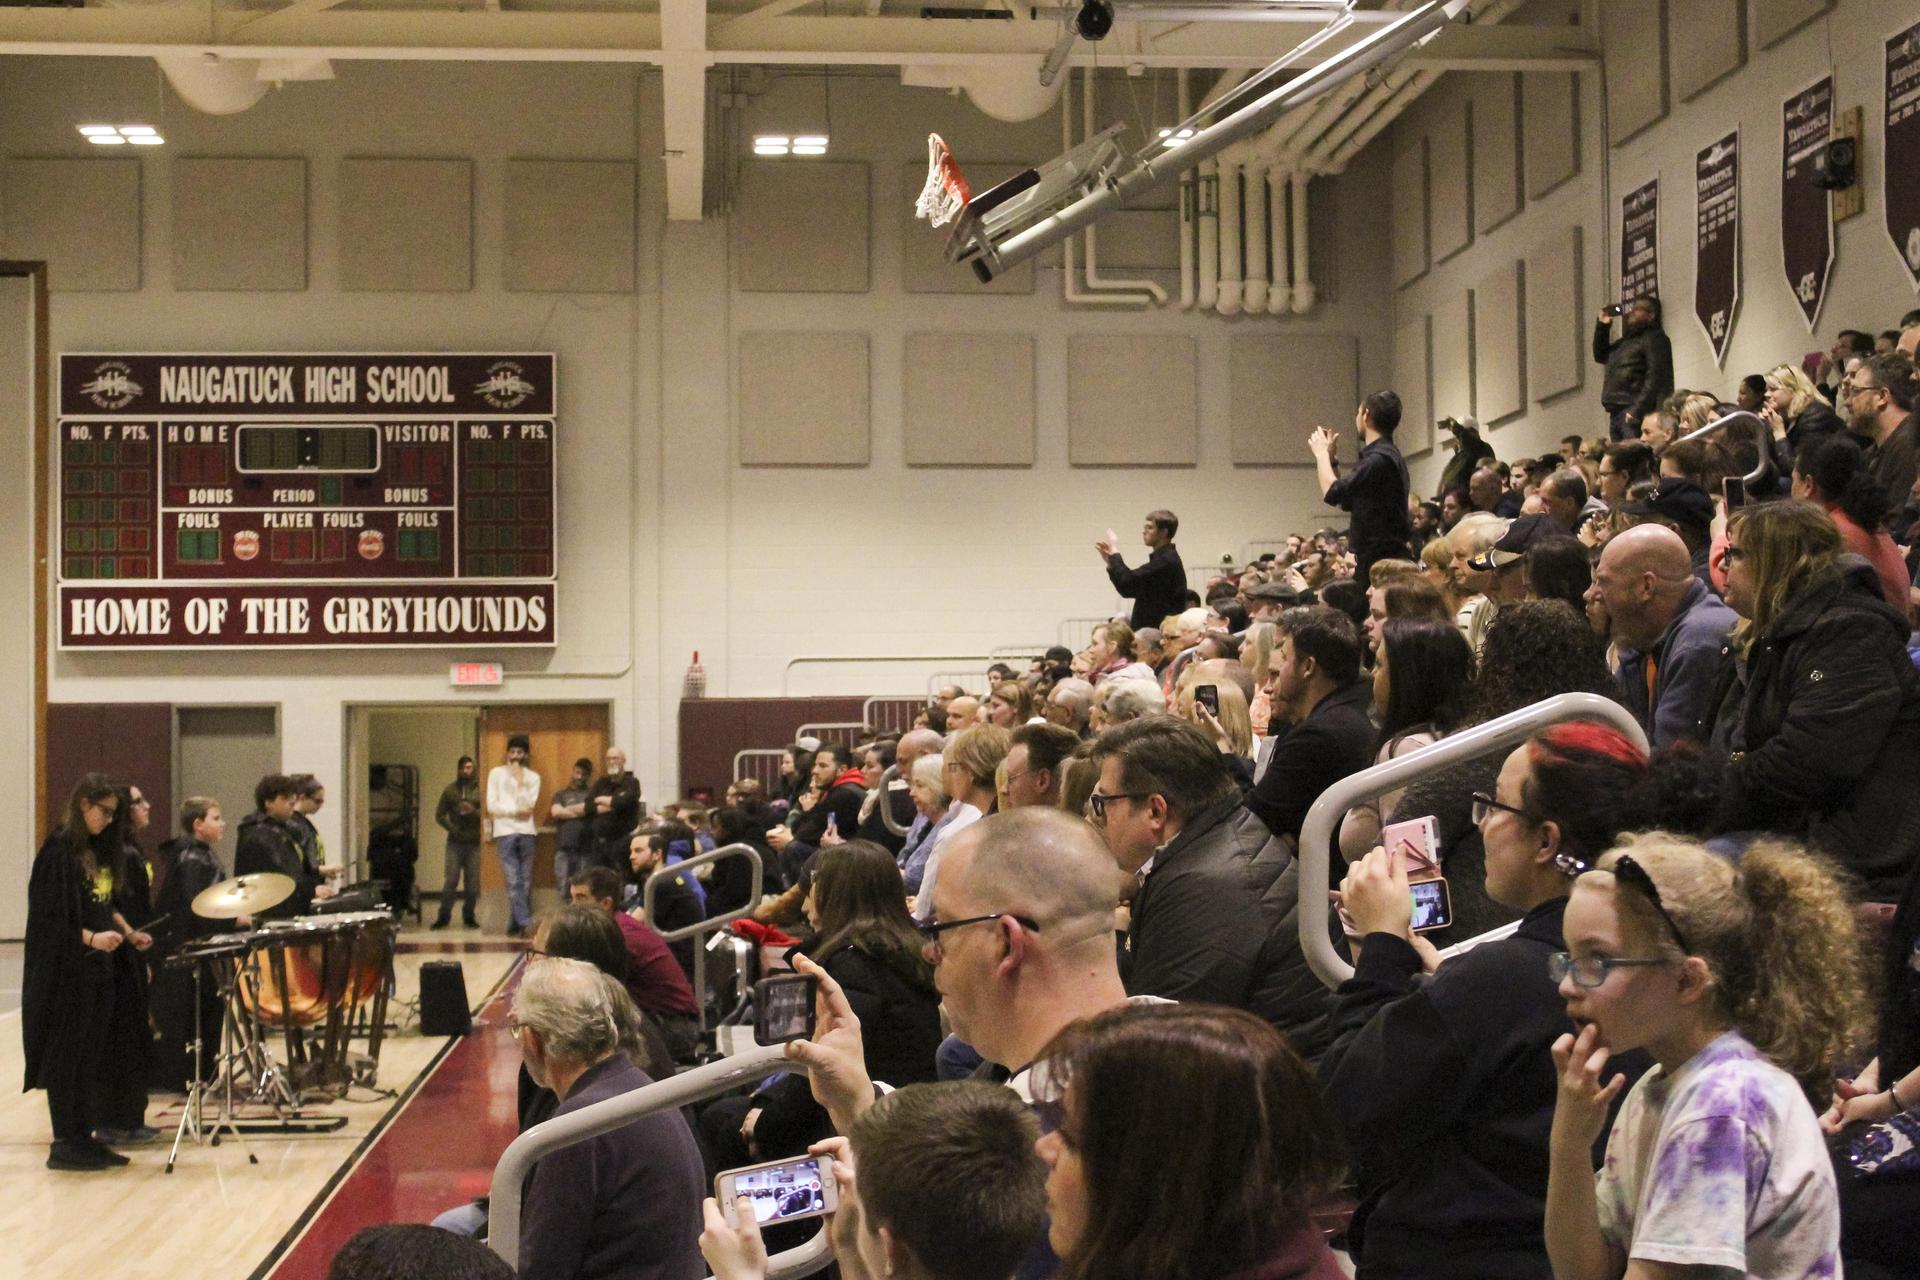 Audience listening to SoundSport musicians playing concert in high school gym